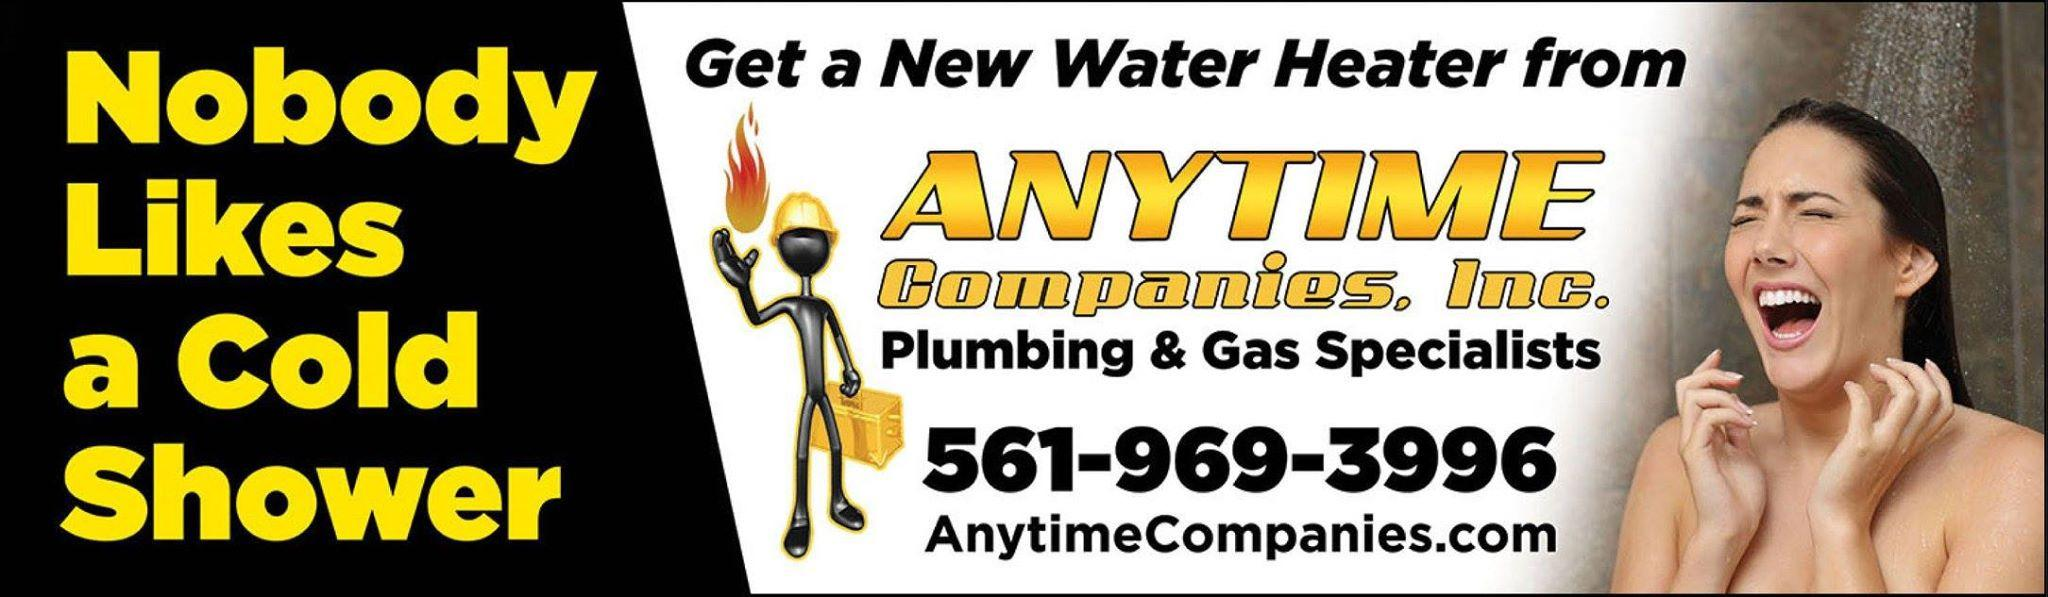 Anytime Plumbing and Gas Services, Inc. image 12